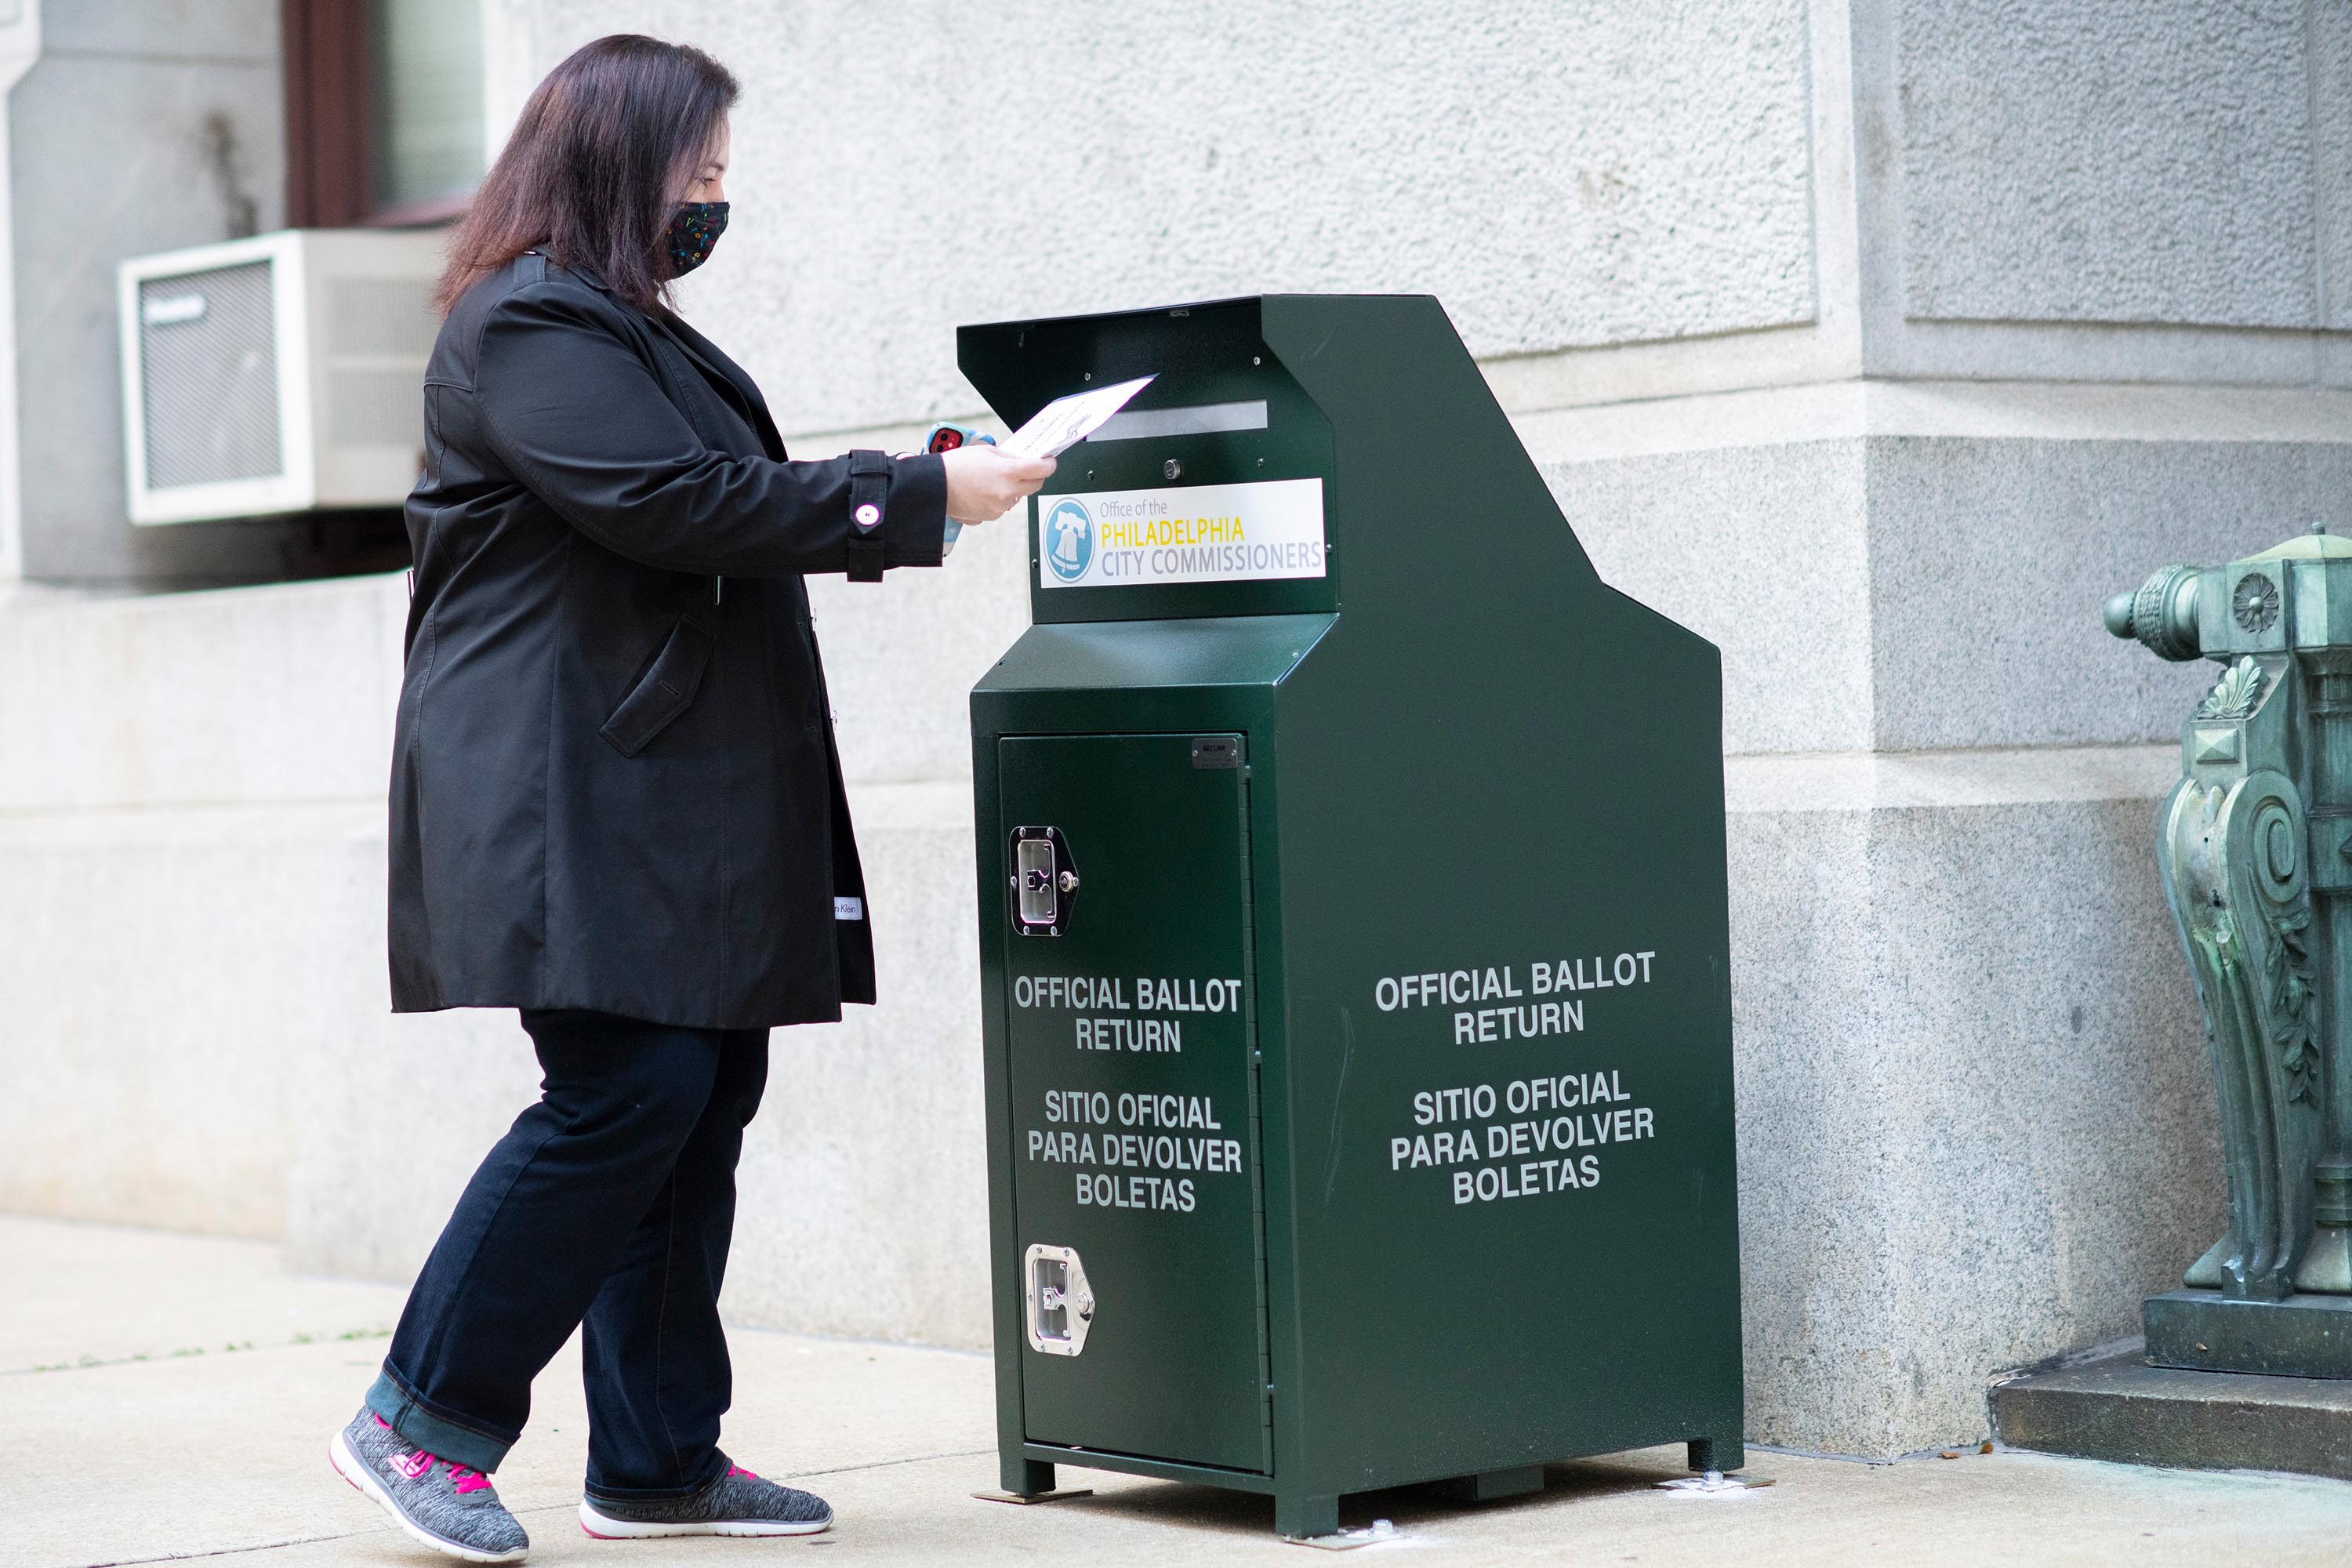 Some Pennsylvania counties will count mail-in ballots last